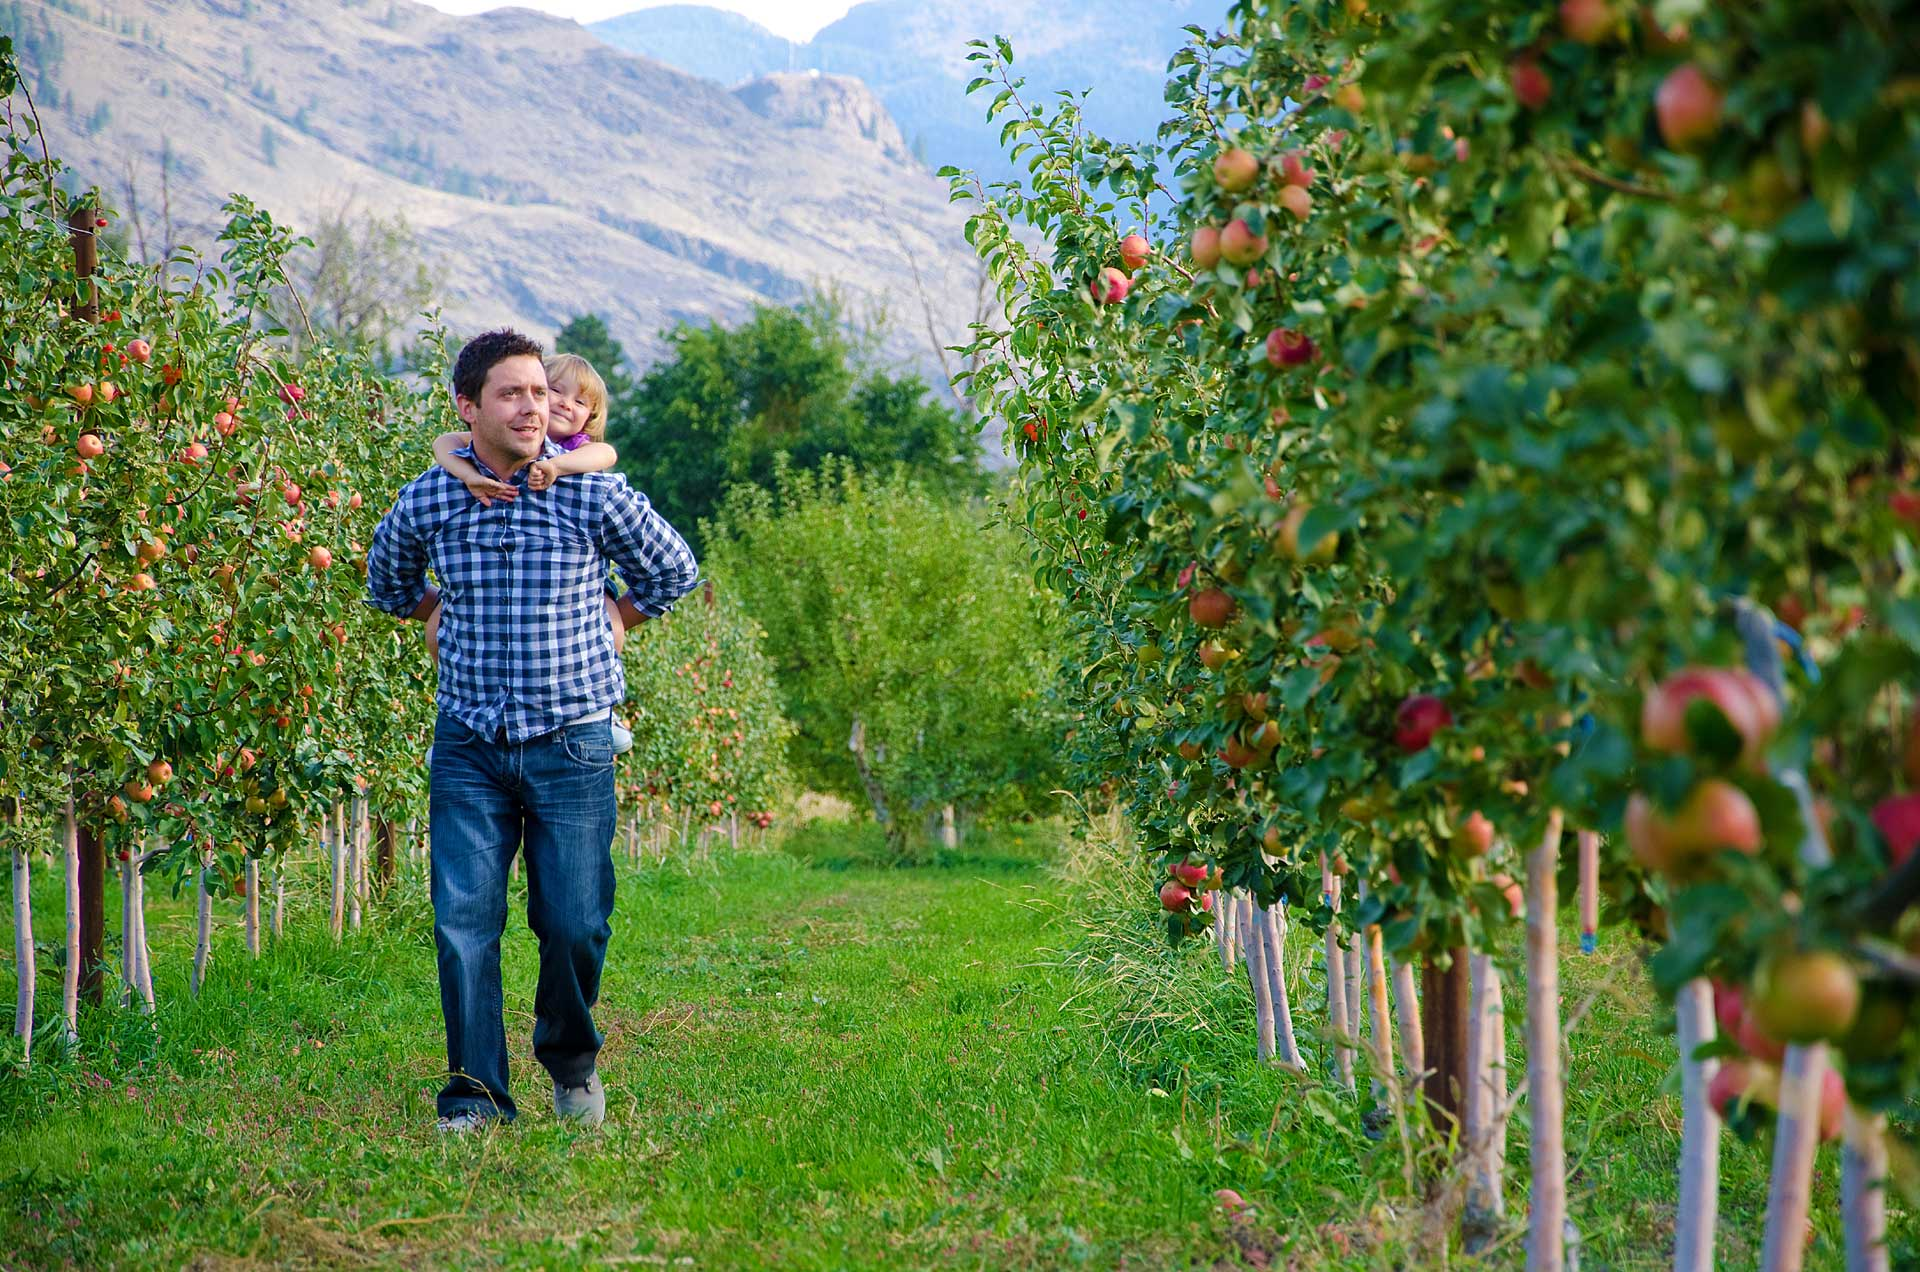 Fall is Harvest Time in the Similkameen Valley